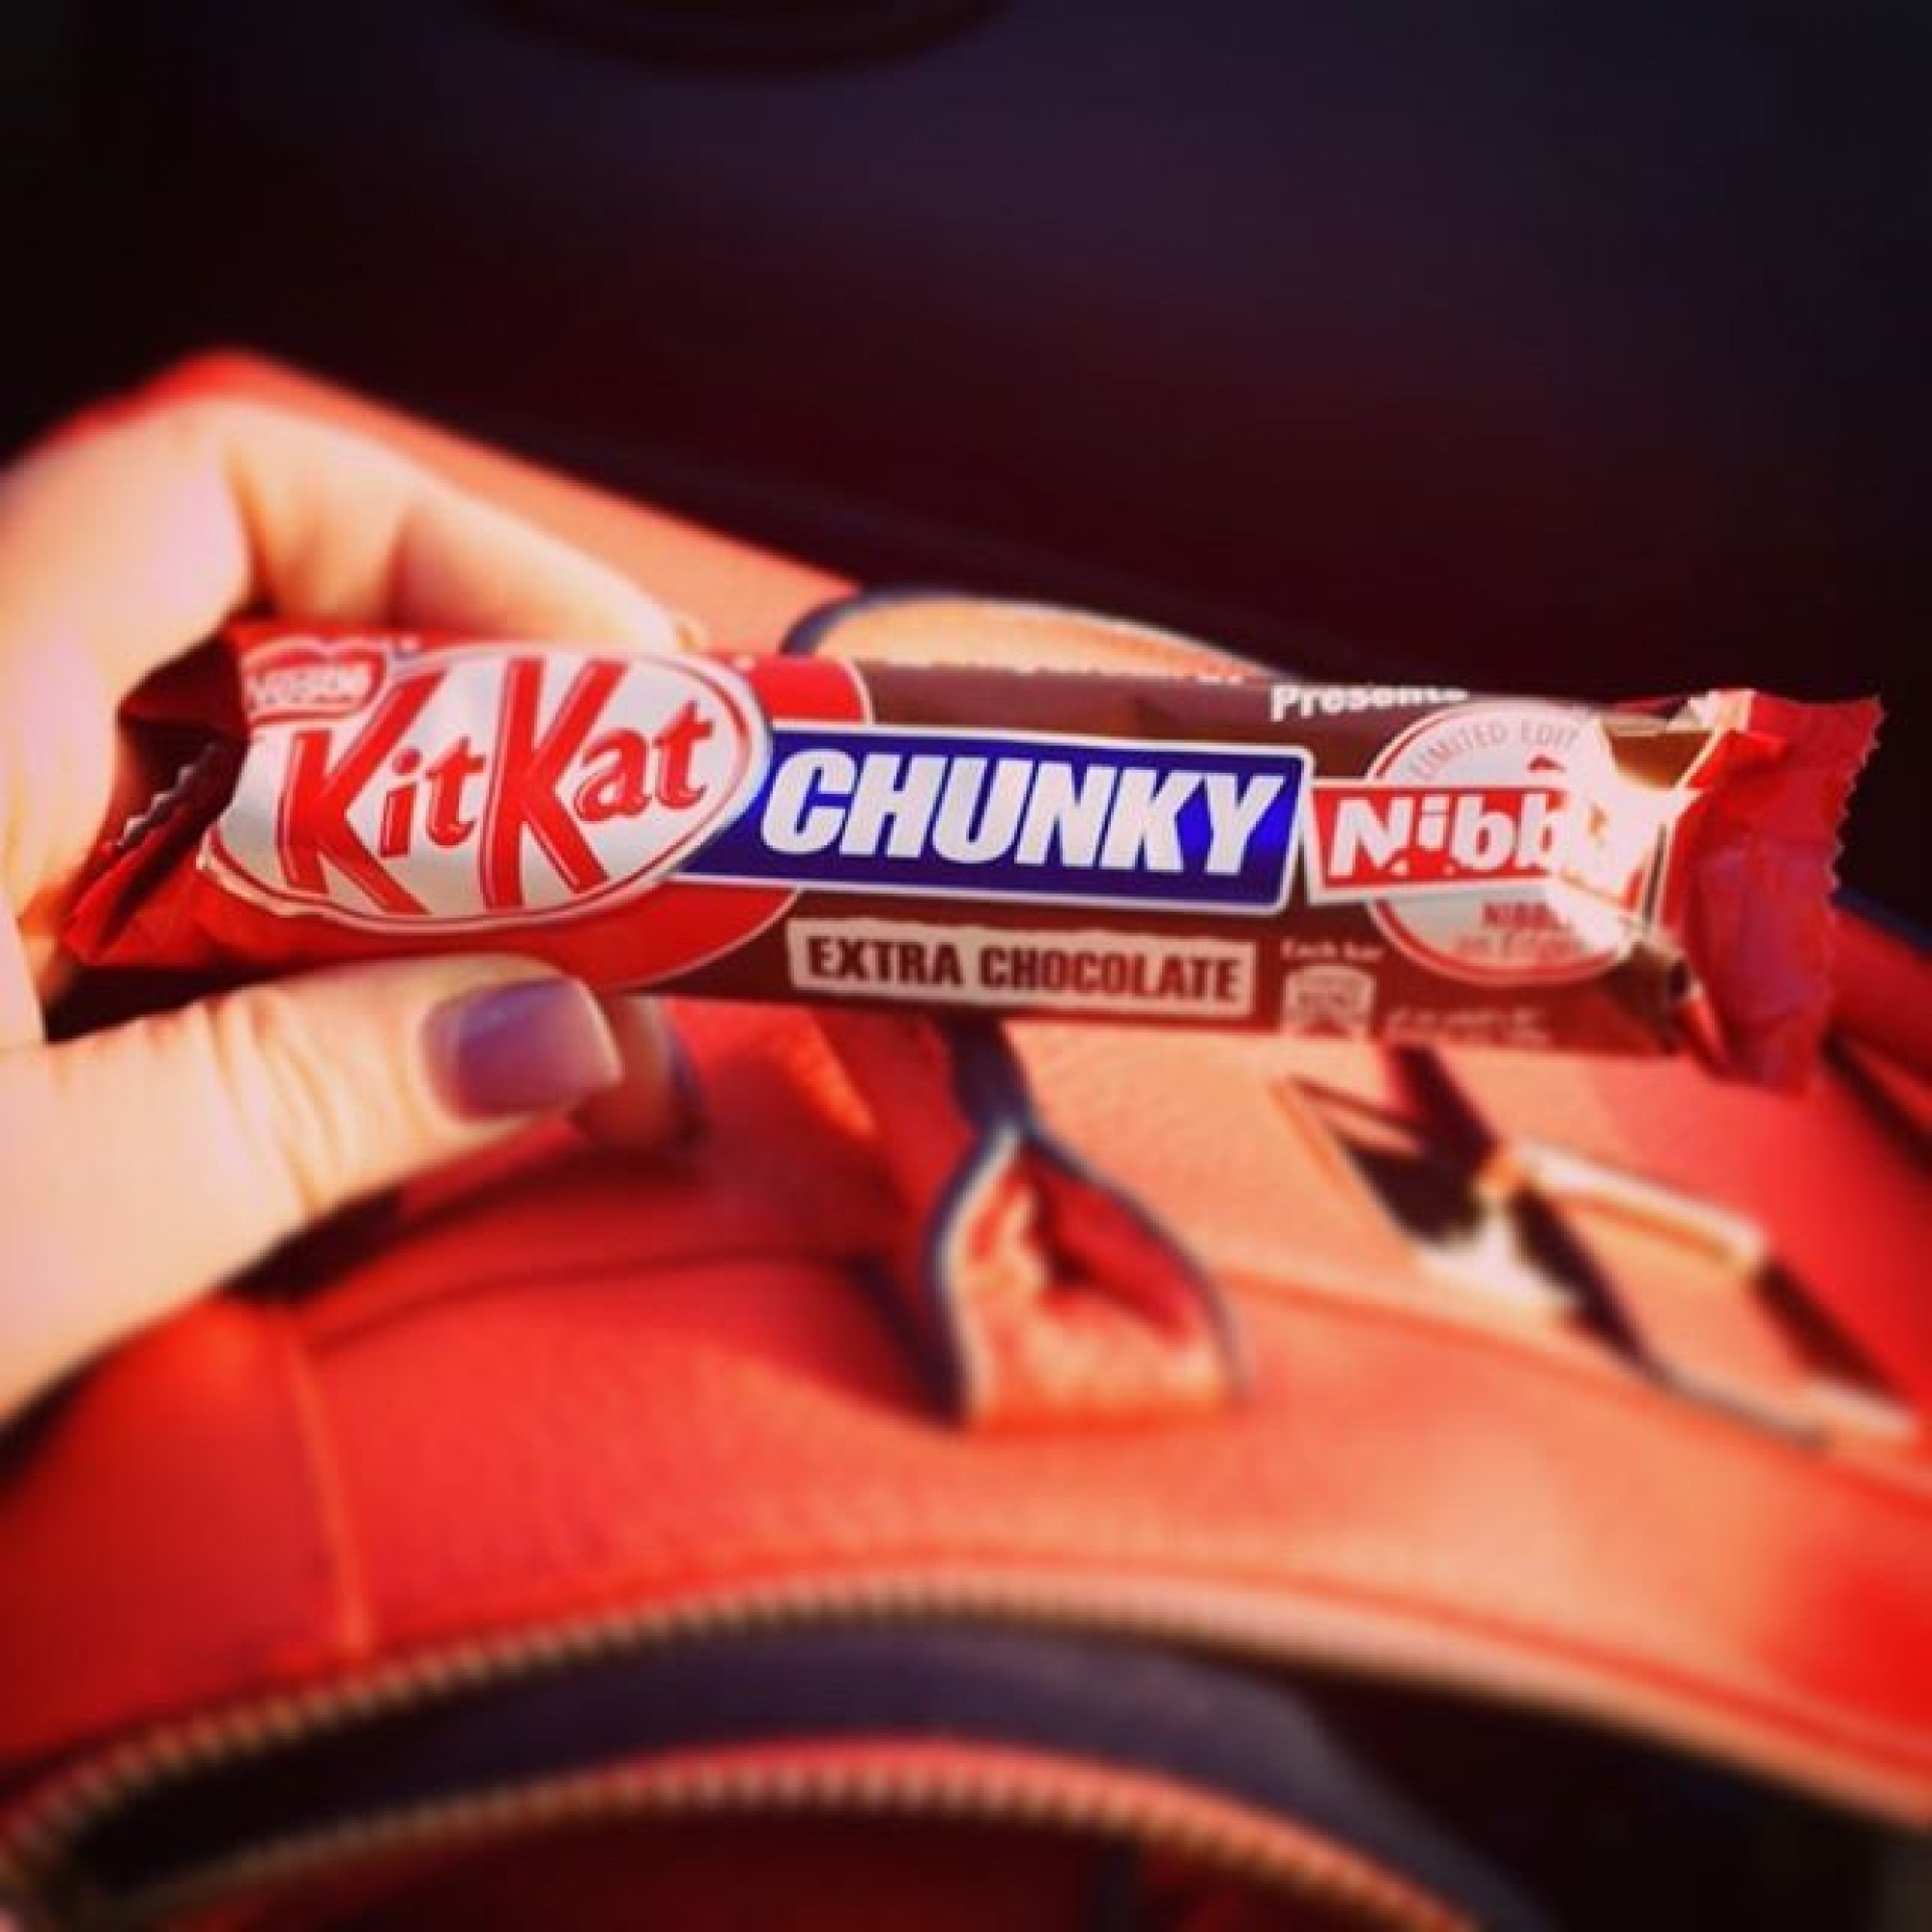 Kit Kat has made a special bar for people who love to nibble off the chocolate